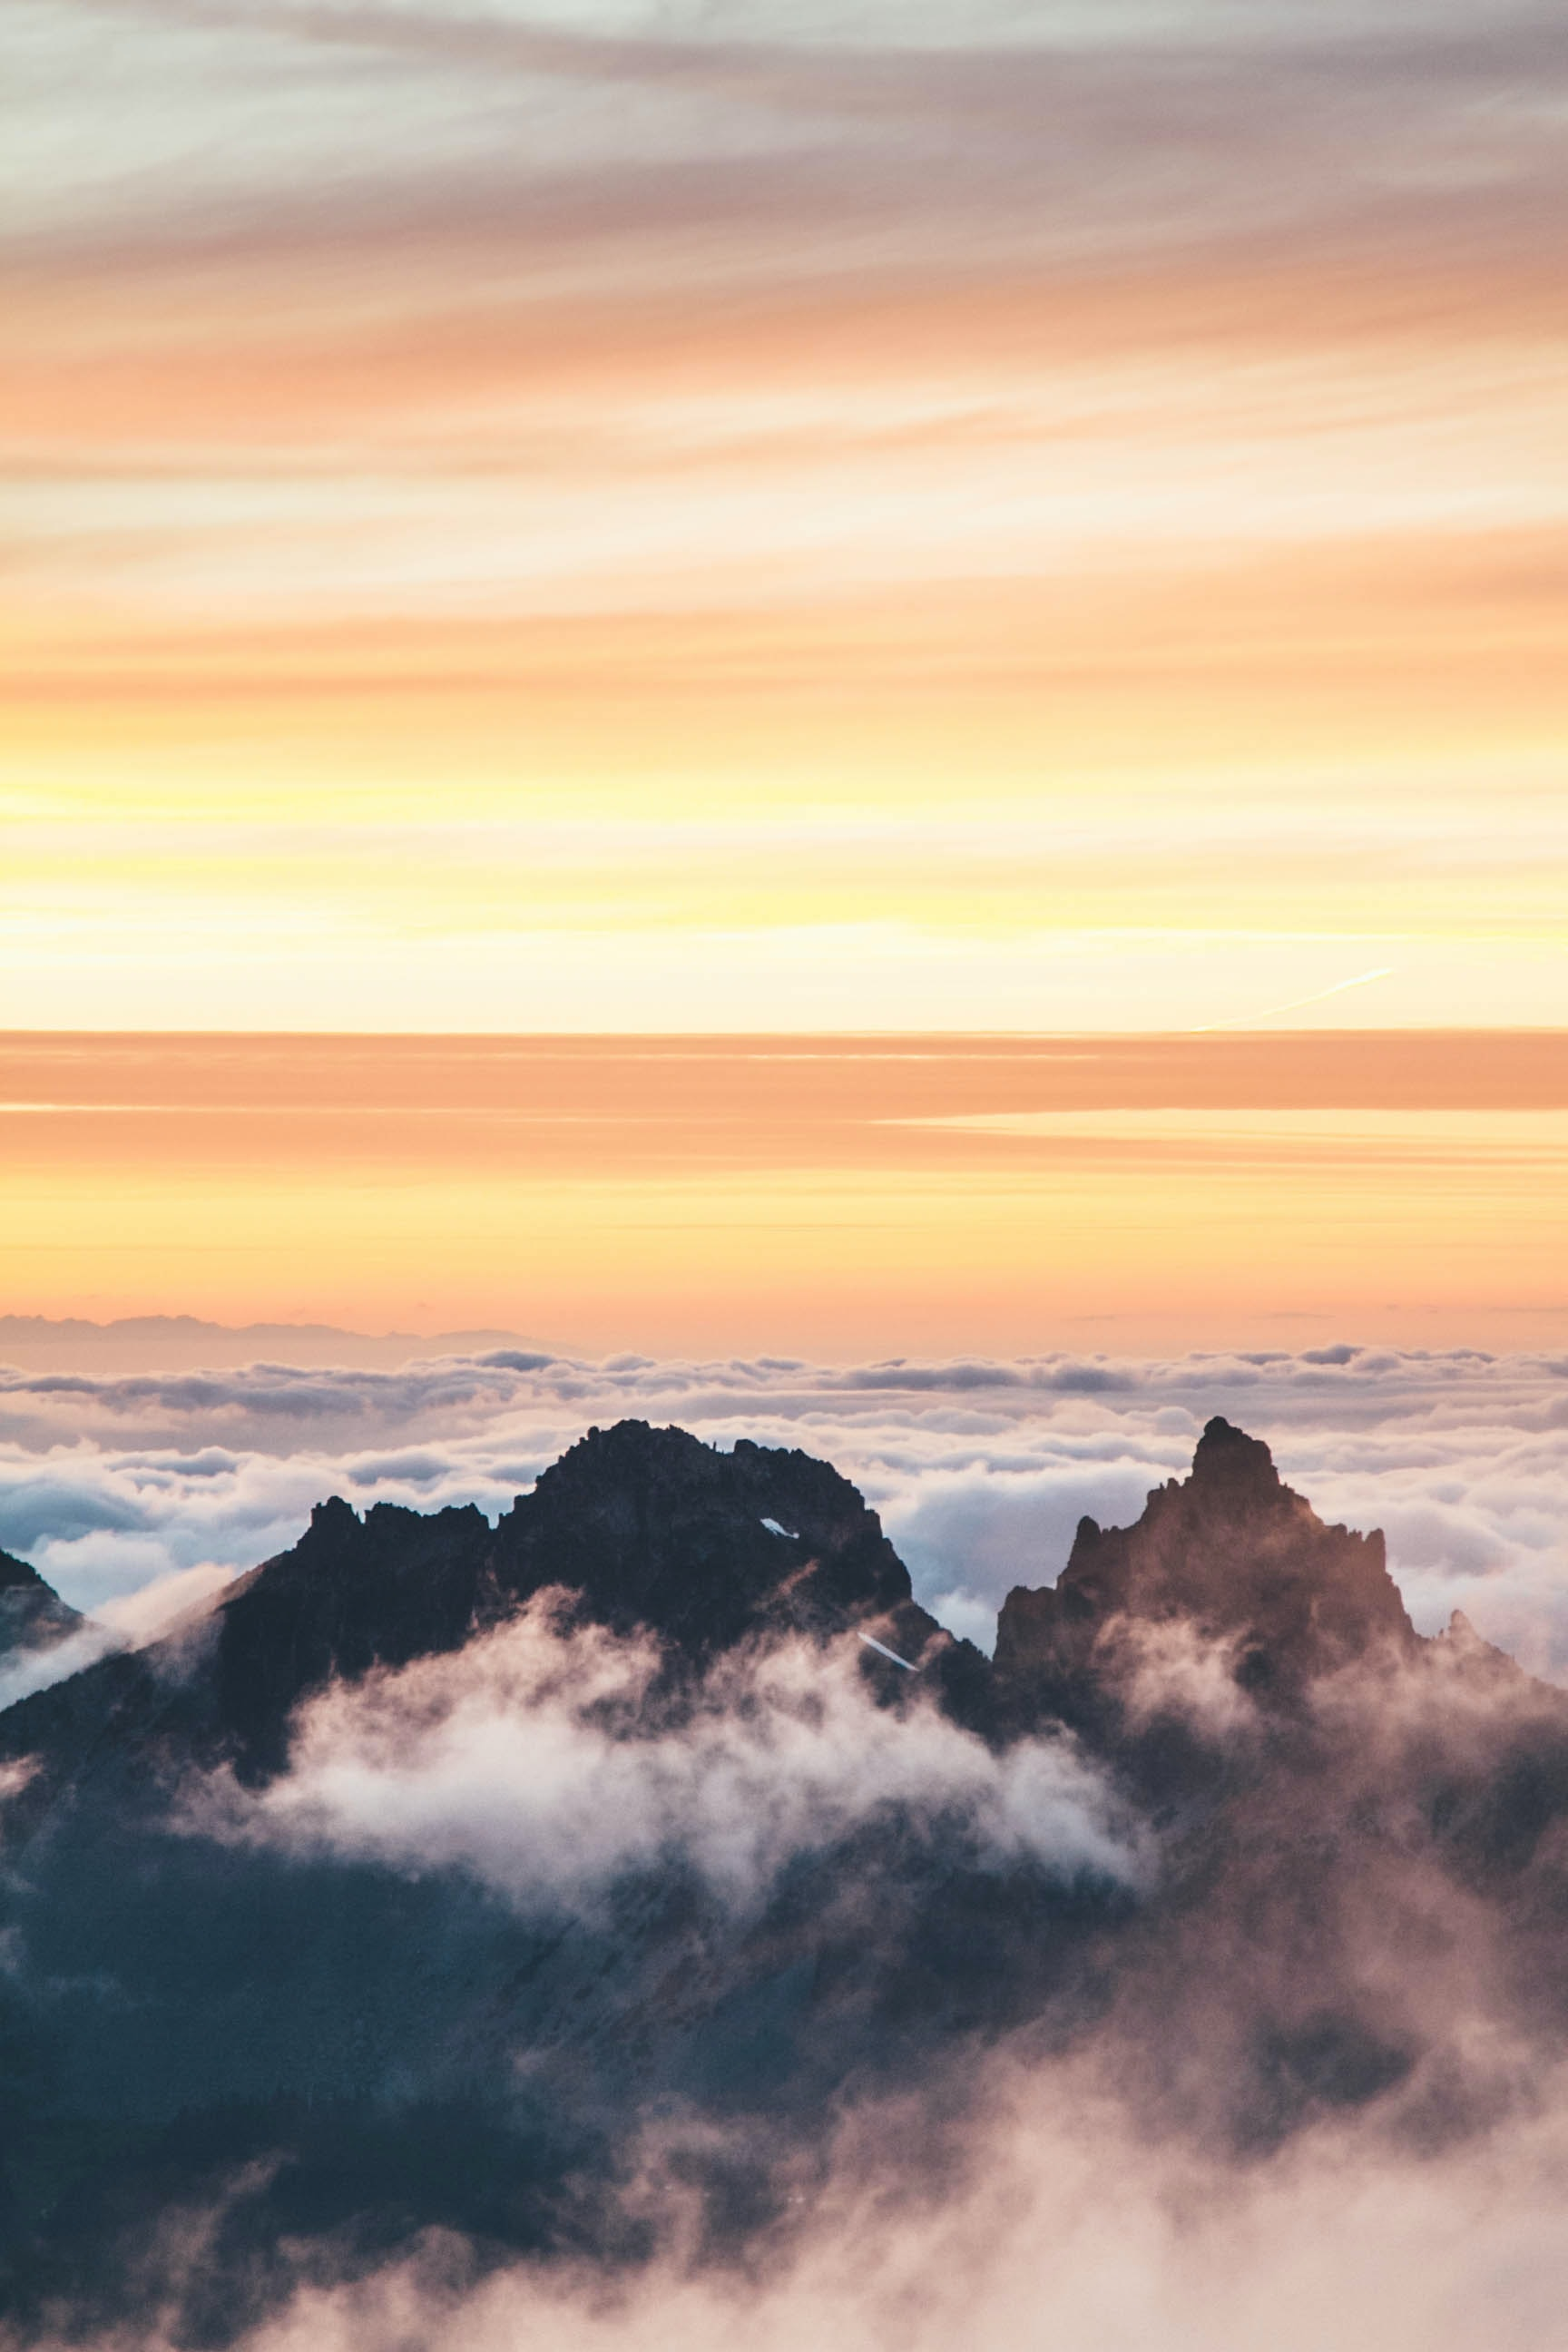 Jagged mountain peaks emerge from a sea of clouds during sunset